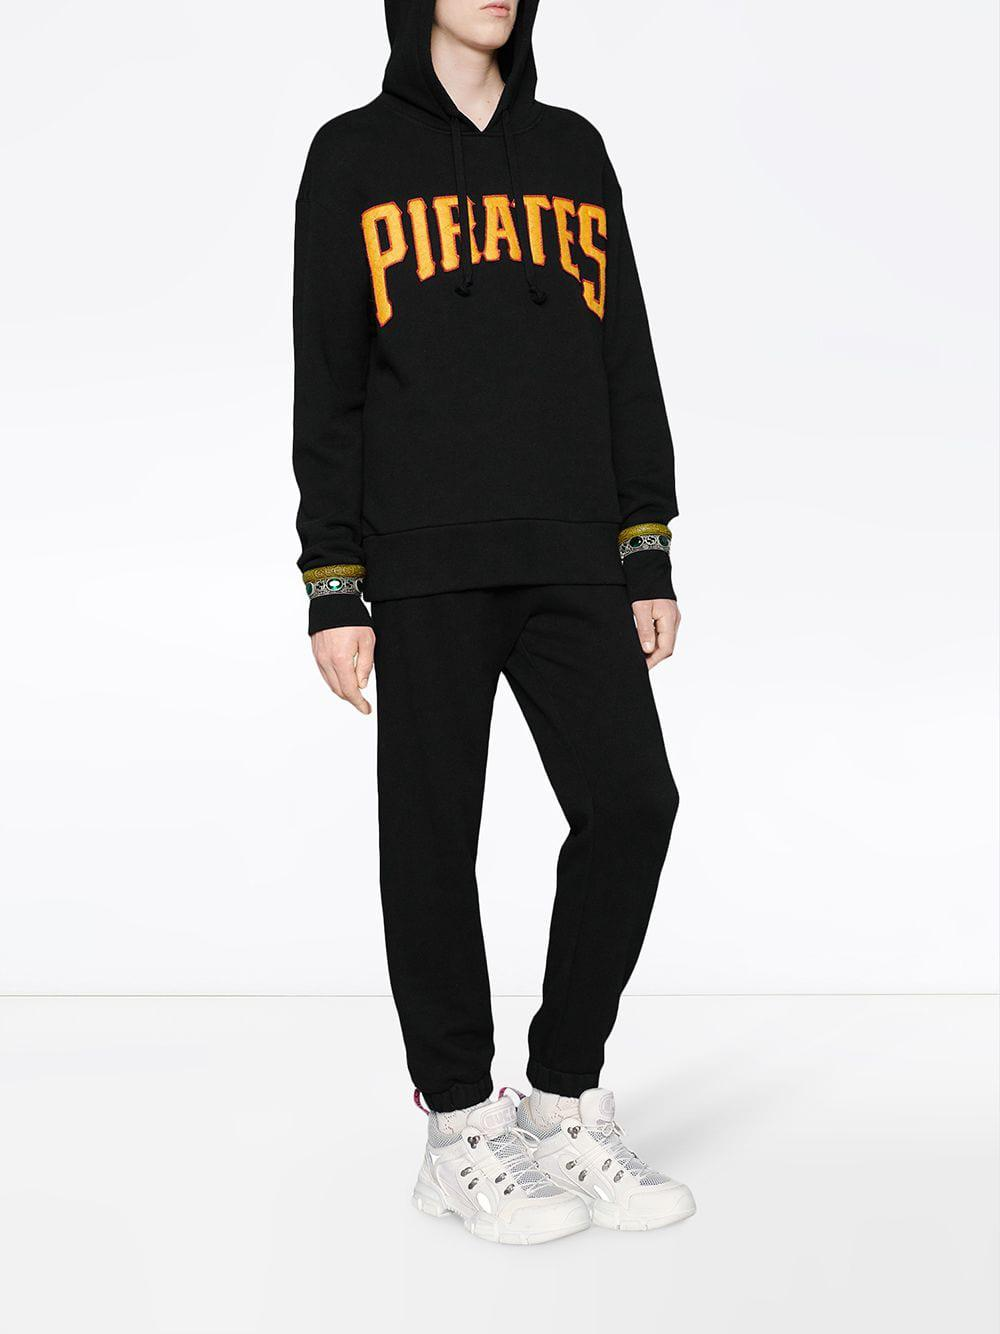 7b23d02fc2e Gucci Men s Sweatshirt With Pittsburgh Piratestm Patch in Black for Men -  Lyst